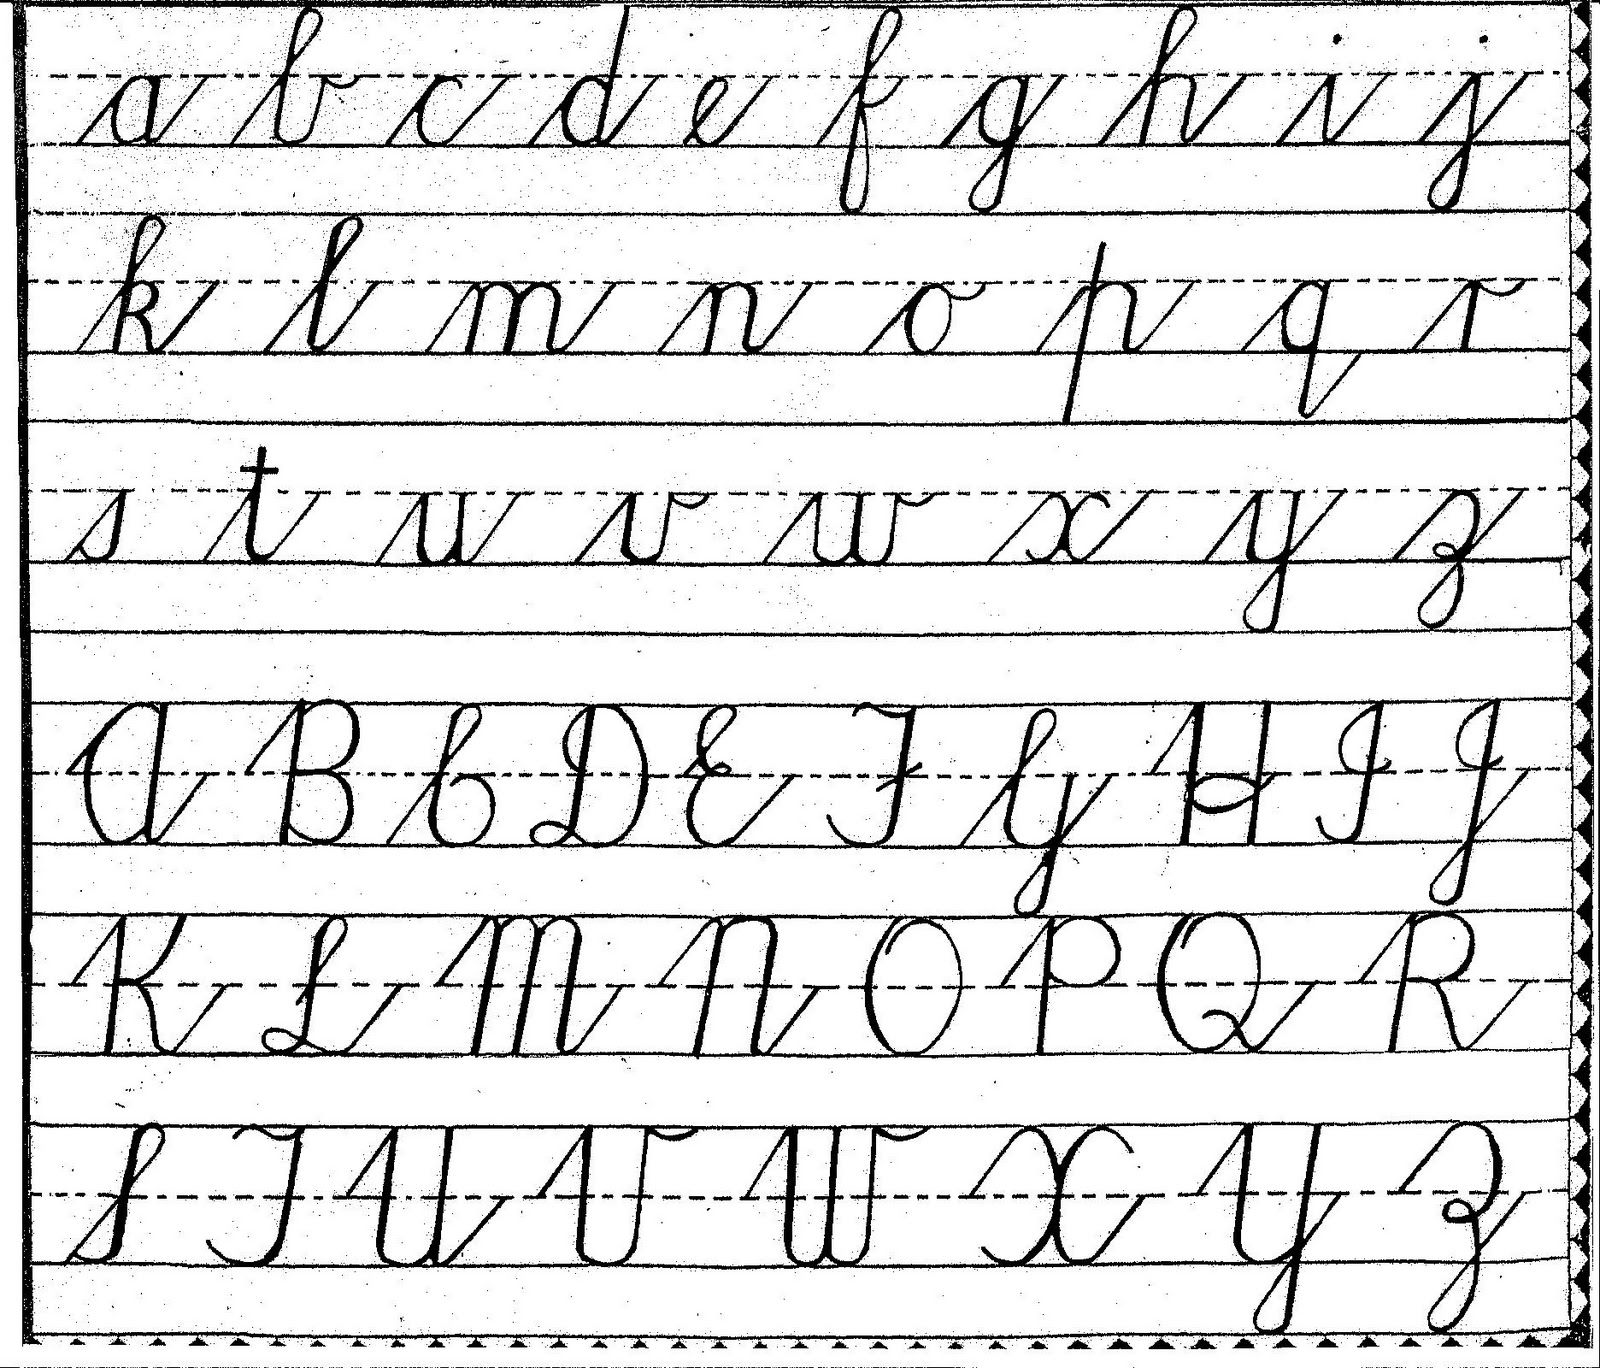 Collection Of Free Cursive Handwriting From All Over The